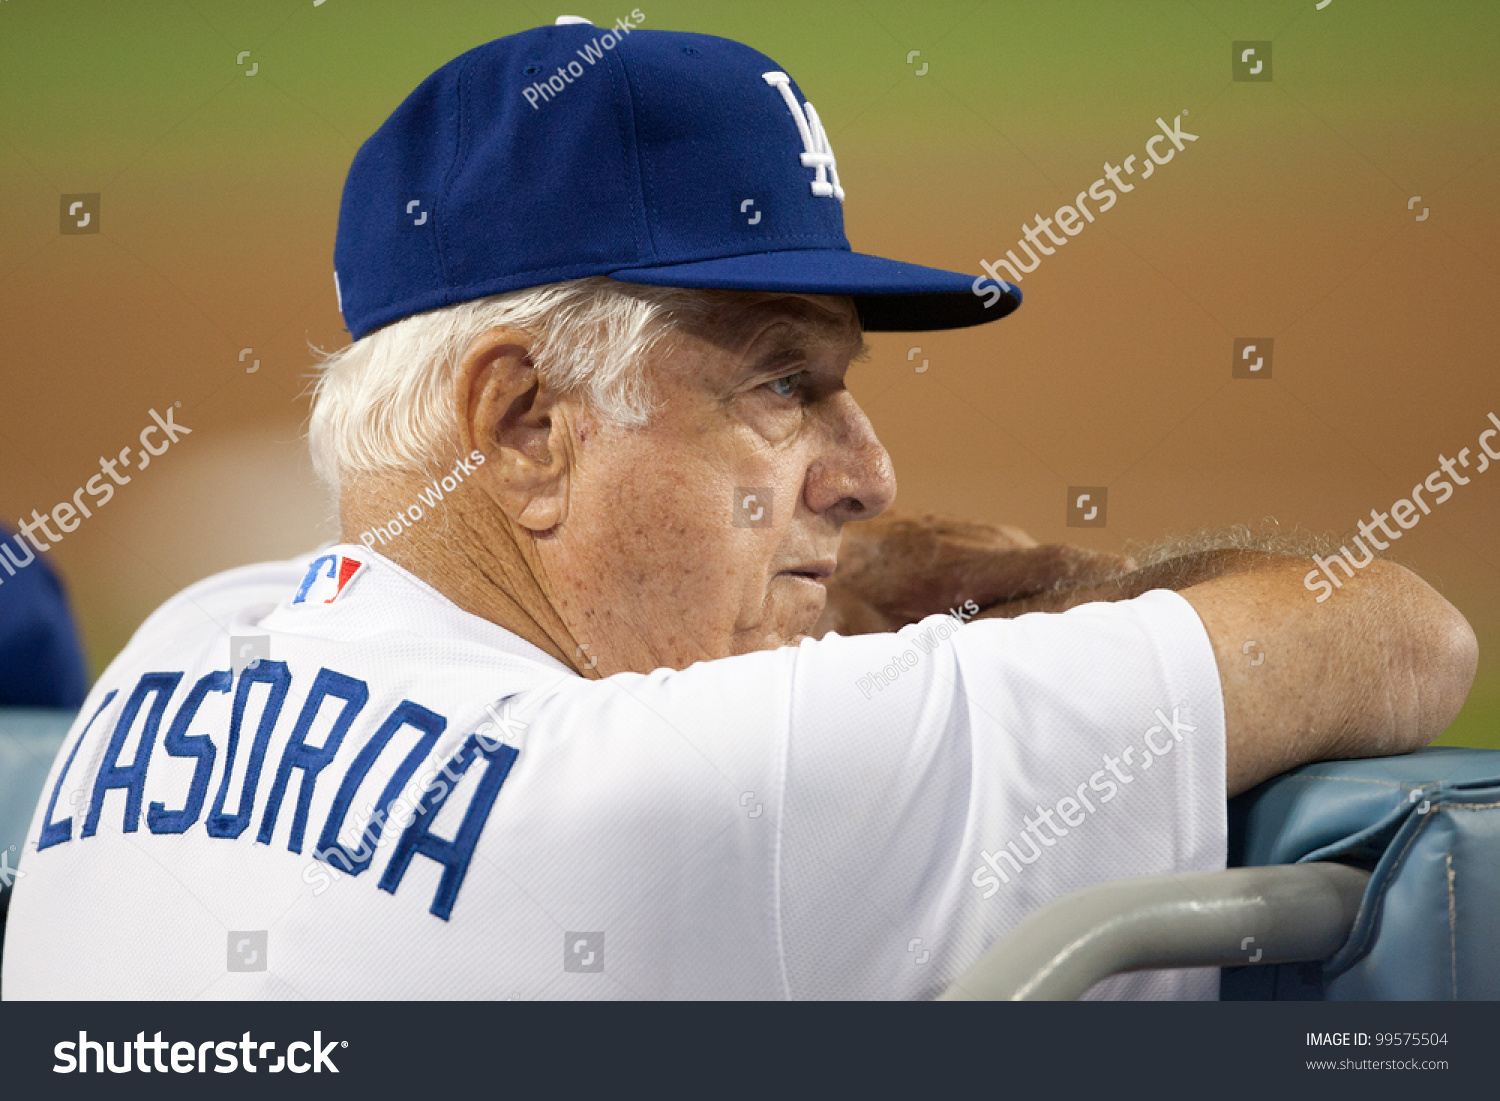 Los angeles sept 22 former los stock photo 99575504 shutterstock los angeles sept 22 former los angeles dodgers manager tommy lasorda during the major buycottarizona Image collections